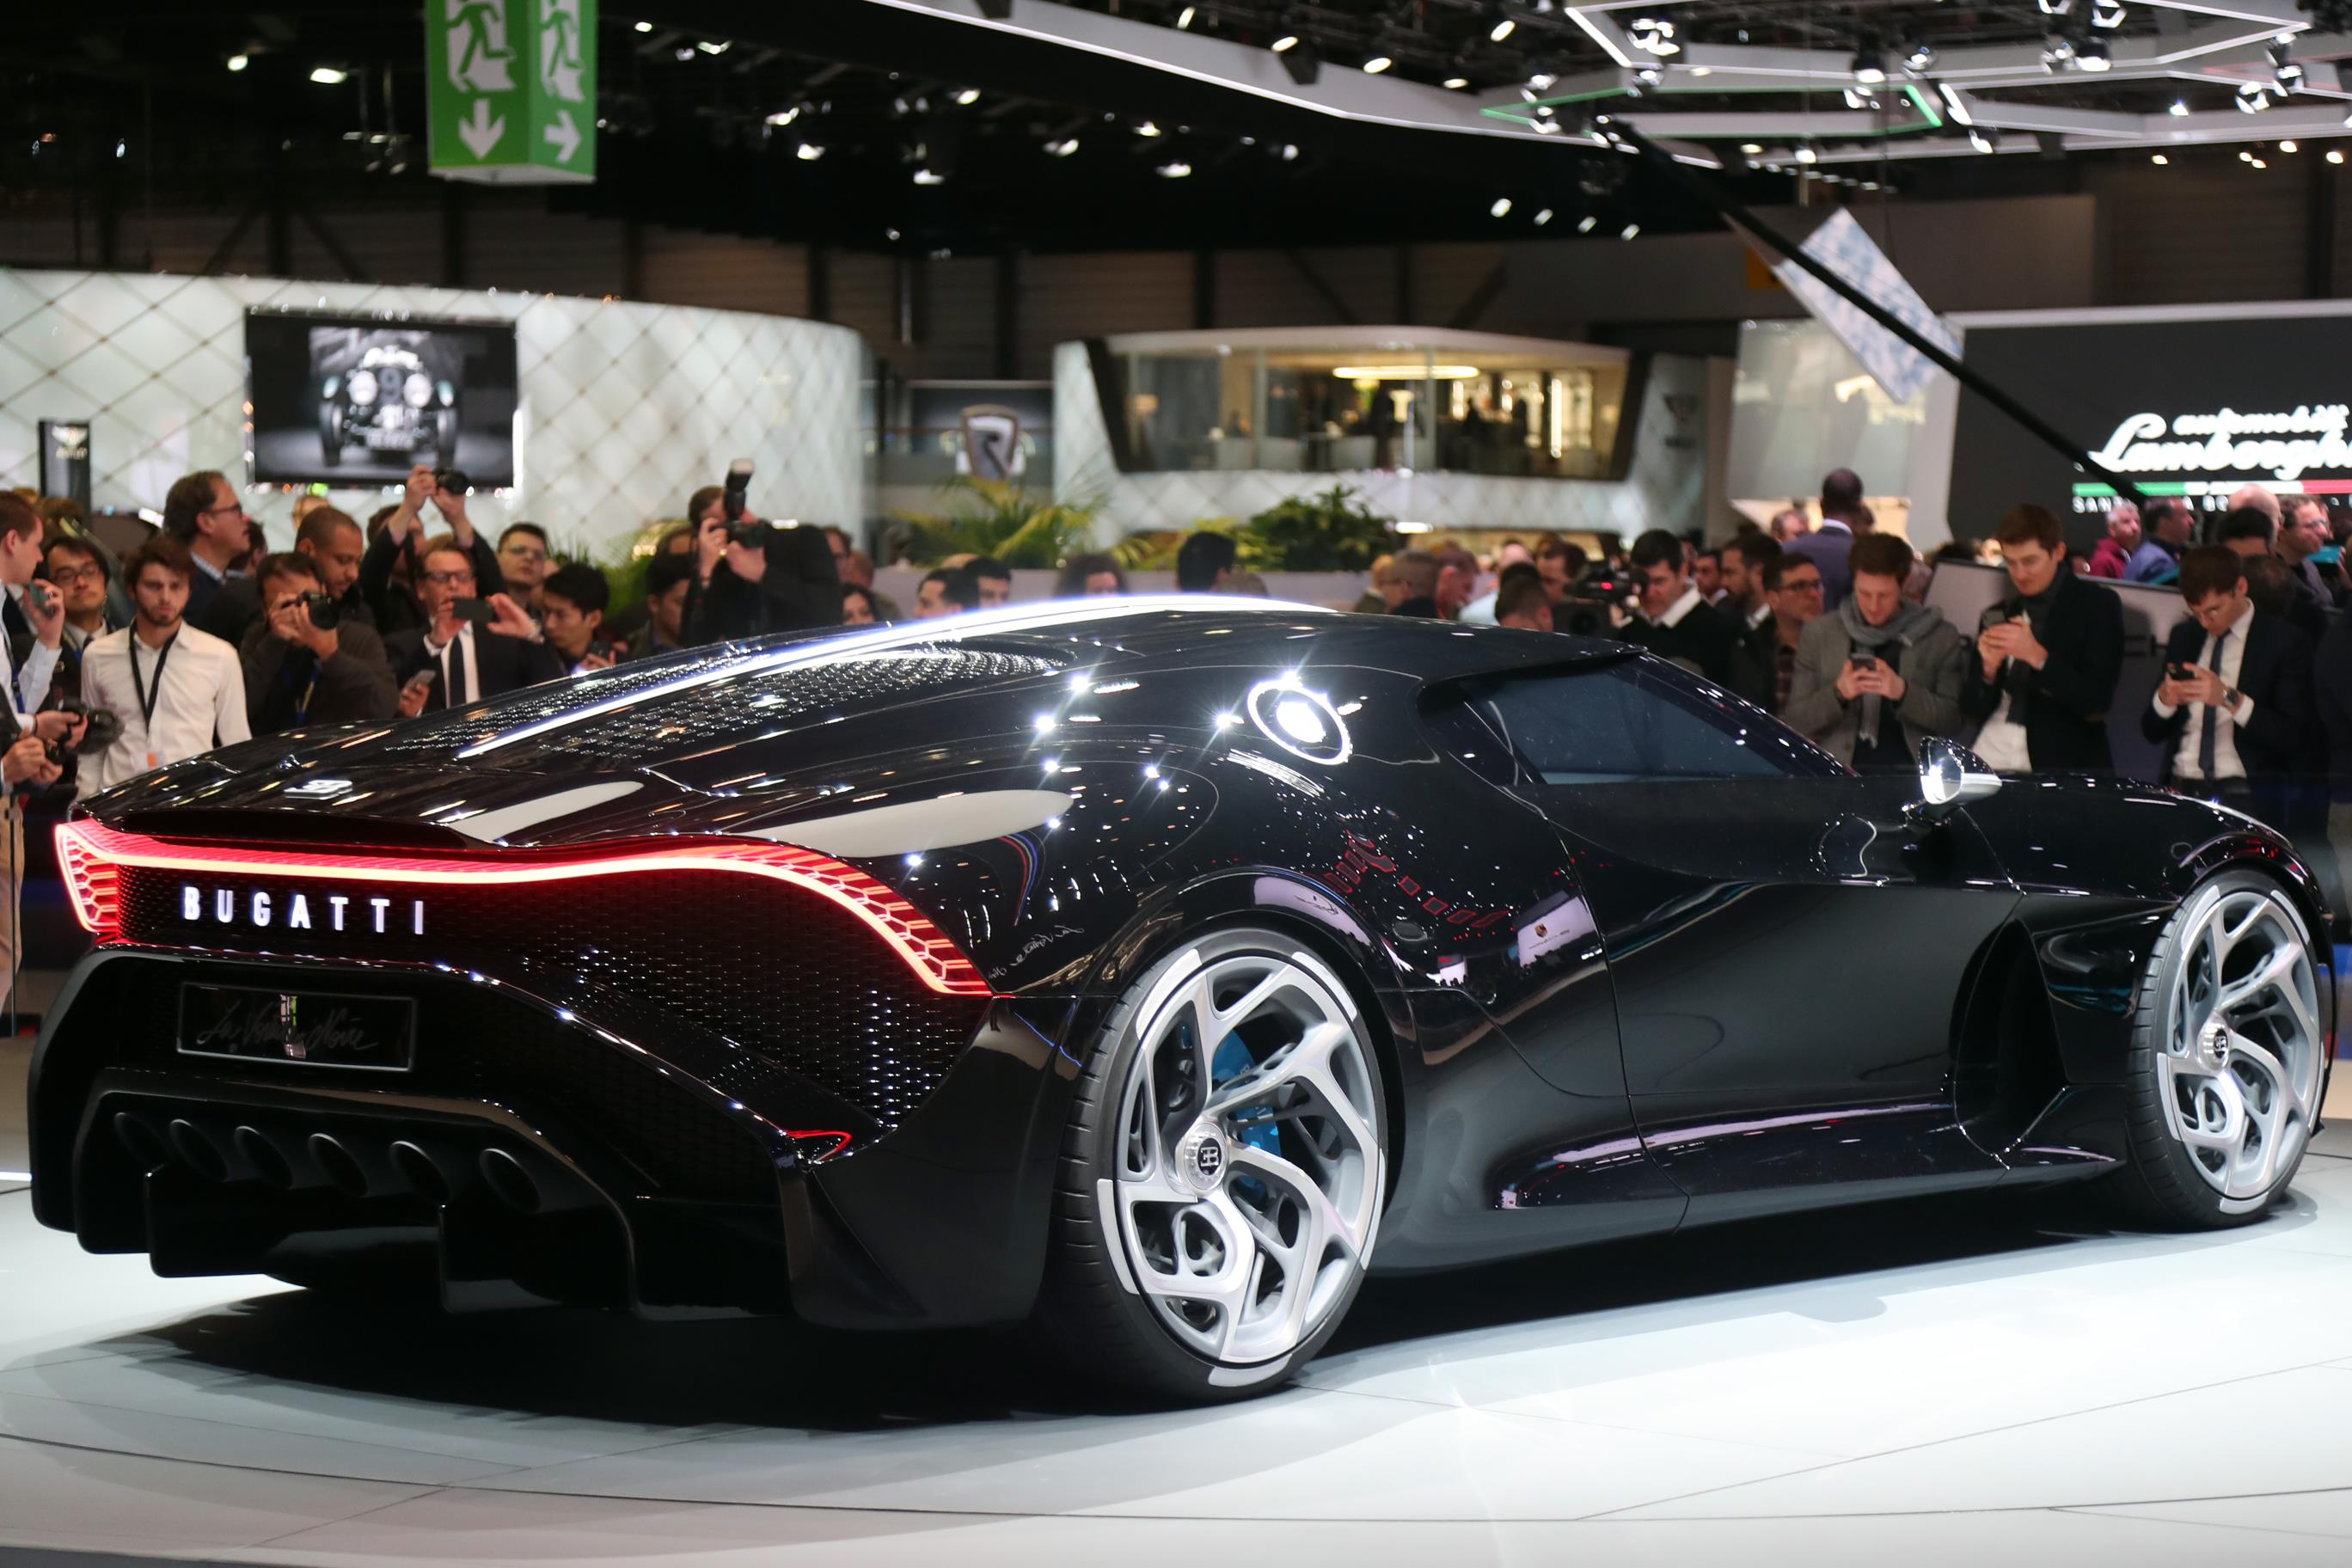 Bugatti La Voiture Noire: Bugatti La Voiture Noire Unveiled, Most Expensive Car Ever